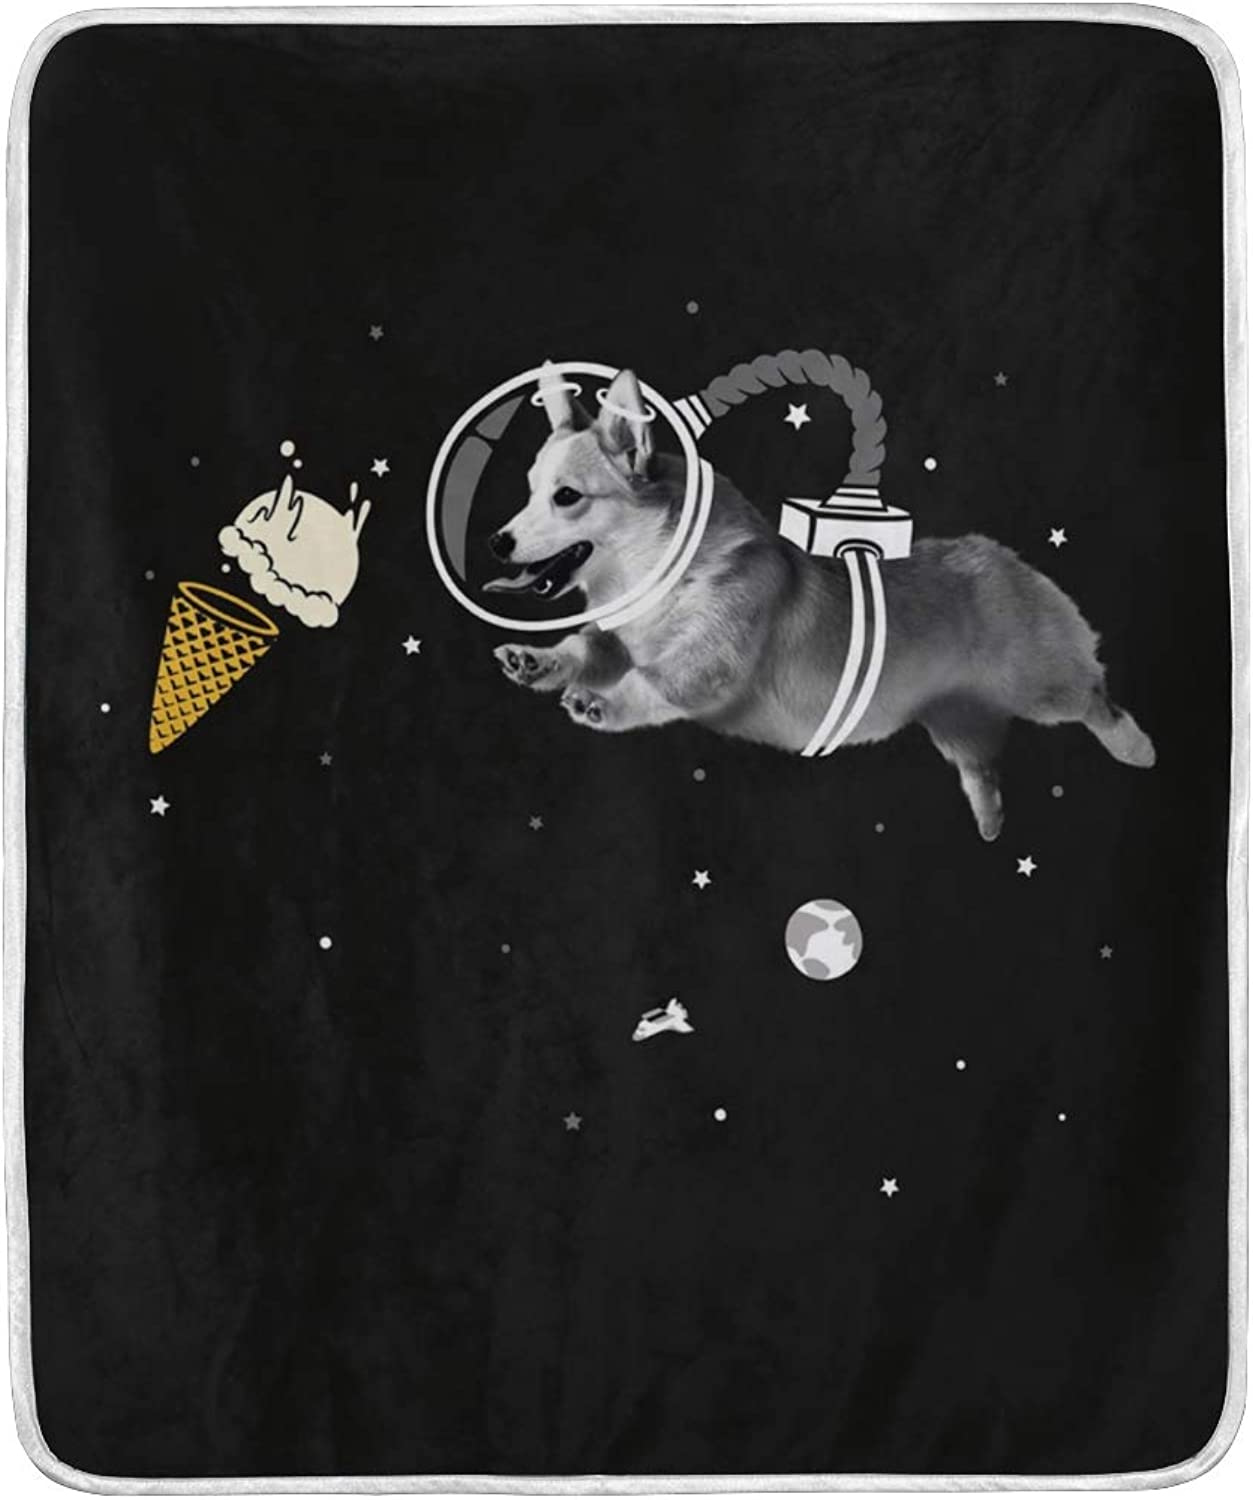 VIMMUCIR Home Decor Corgi Naut Blanket Soft Warm Throw Blankets for Bed Sofa Lightweight Travelling Camping 50 x 60 Inch for Kids Adults